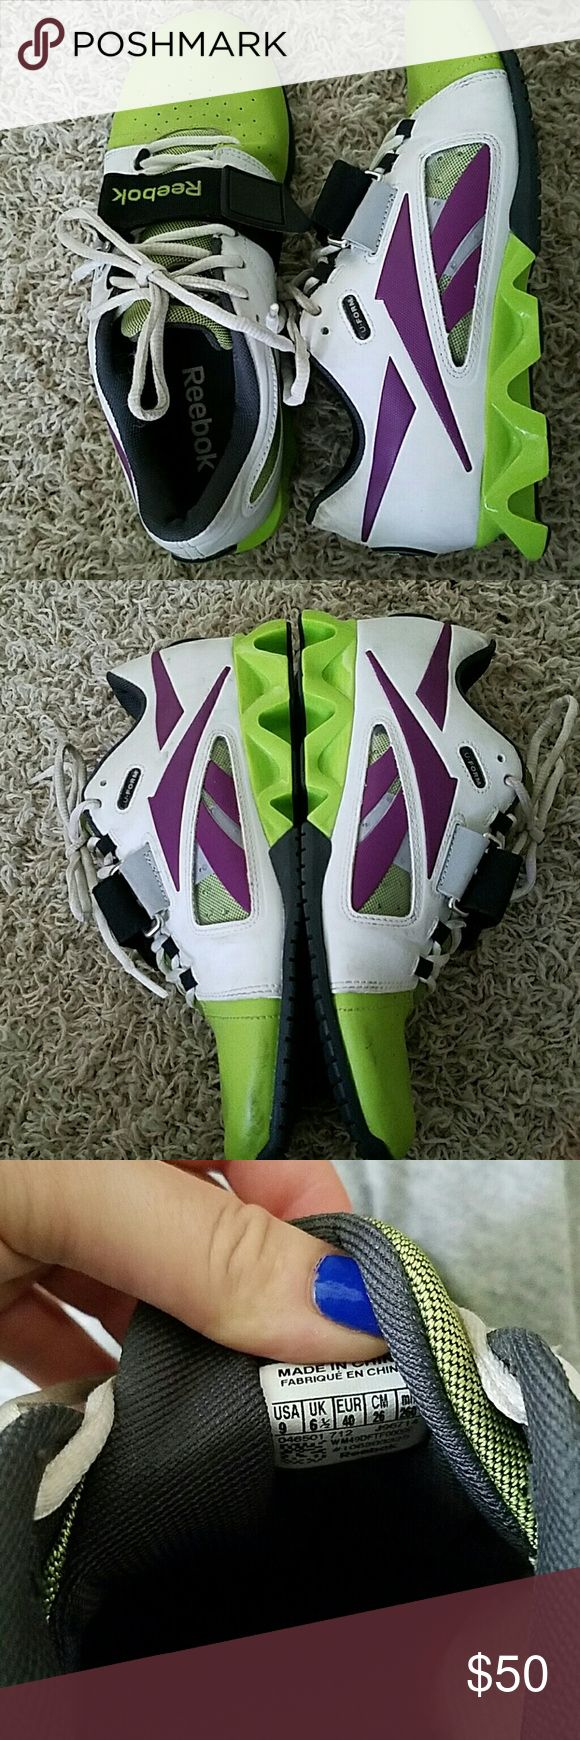 Reebok crossfit Olympic Lifters Olympic lifting shoe. Like new worn maybe 5 times Reebok Shoes Athletic Shoes